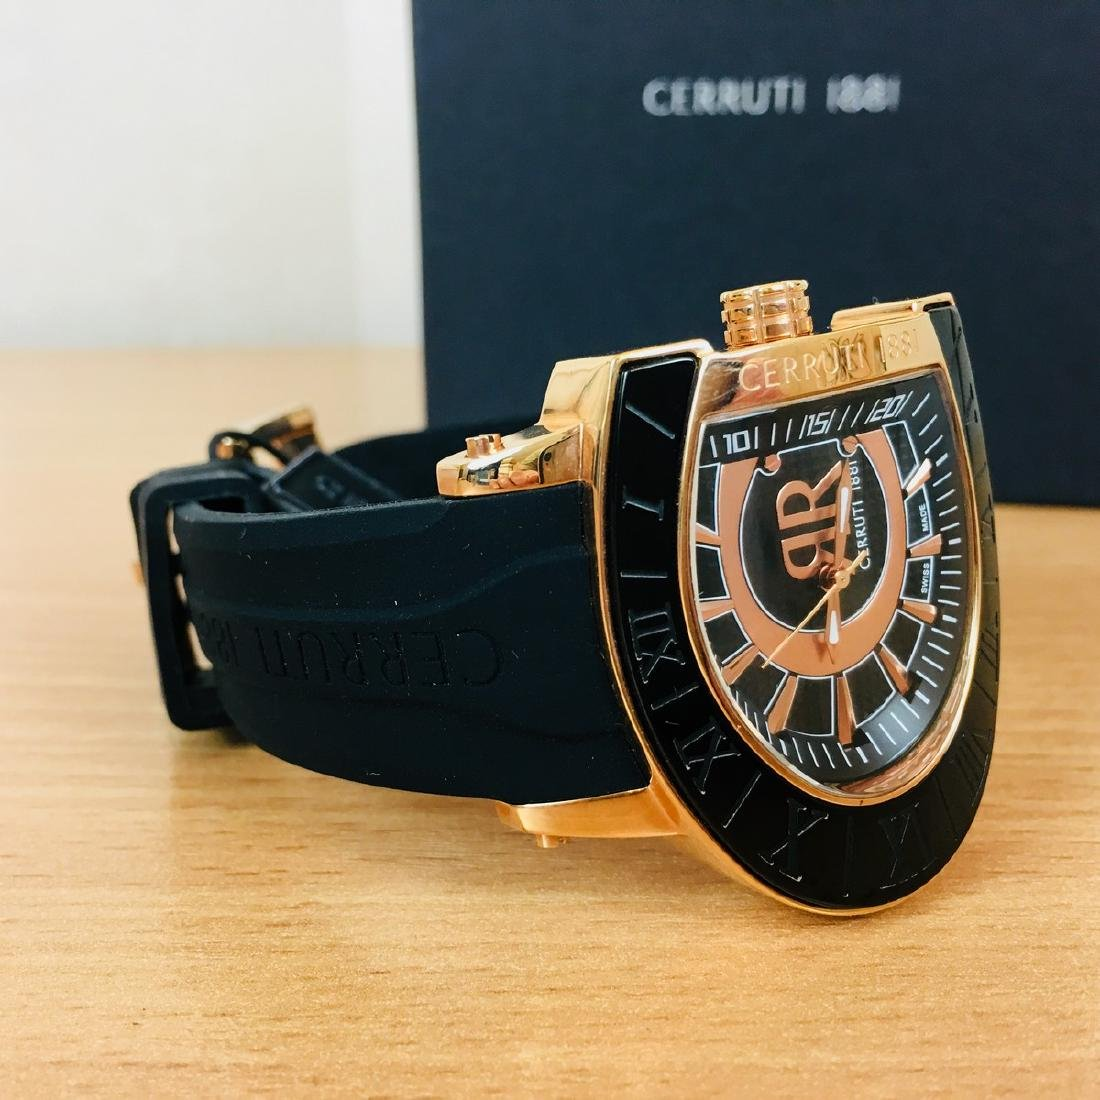 Cerruti 1881 – Men's Swiss Made Gold Plated Luxurious - 6